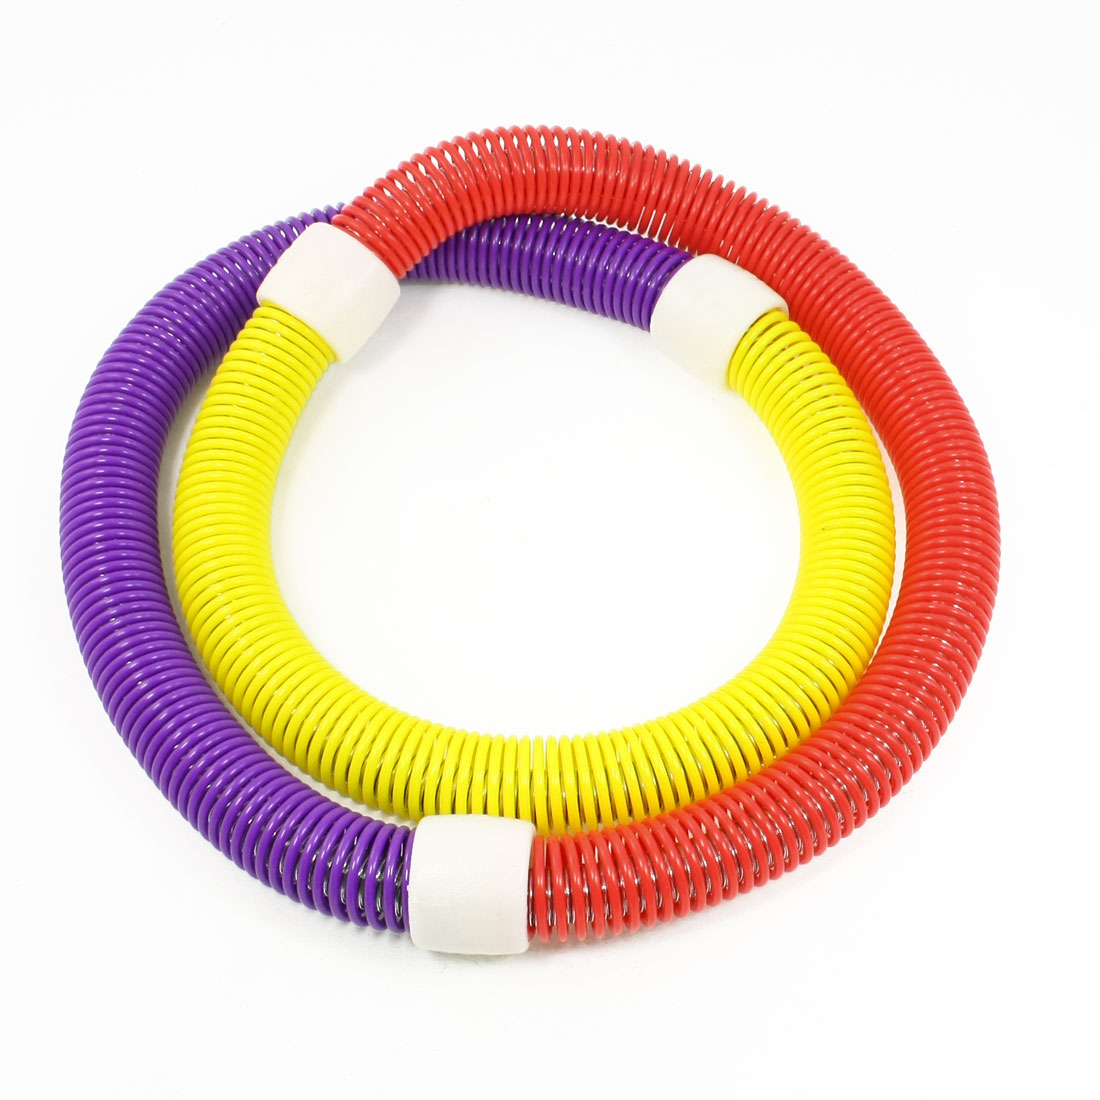 Waist Body Training Flexible Coiled Hula Hoop for Exercise Sports